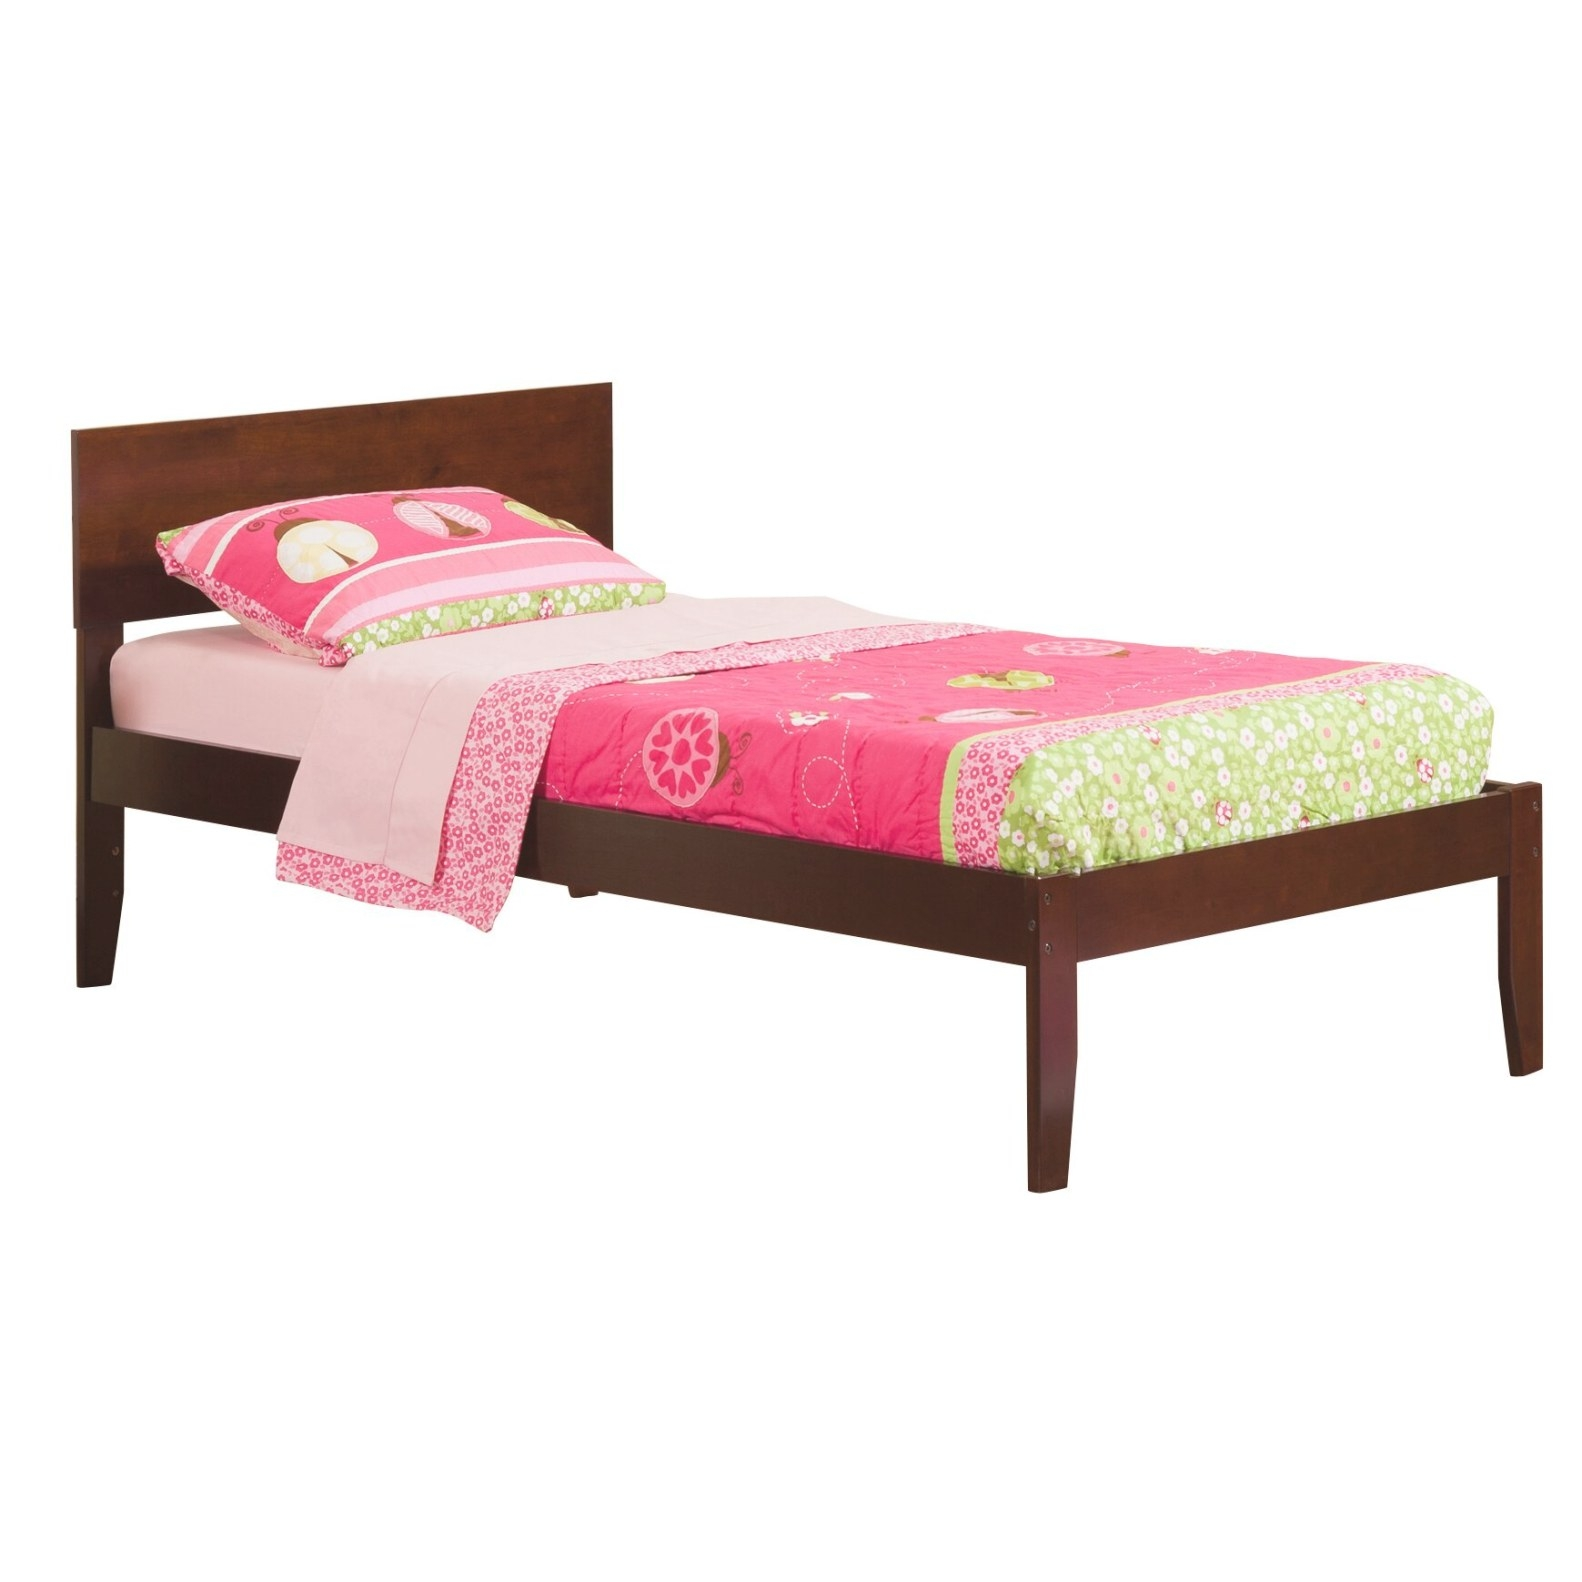 Atlantic Furniture Orlando Extra Long Twin Panel Bed for Extra Long Twin Bed